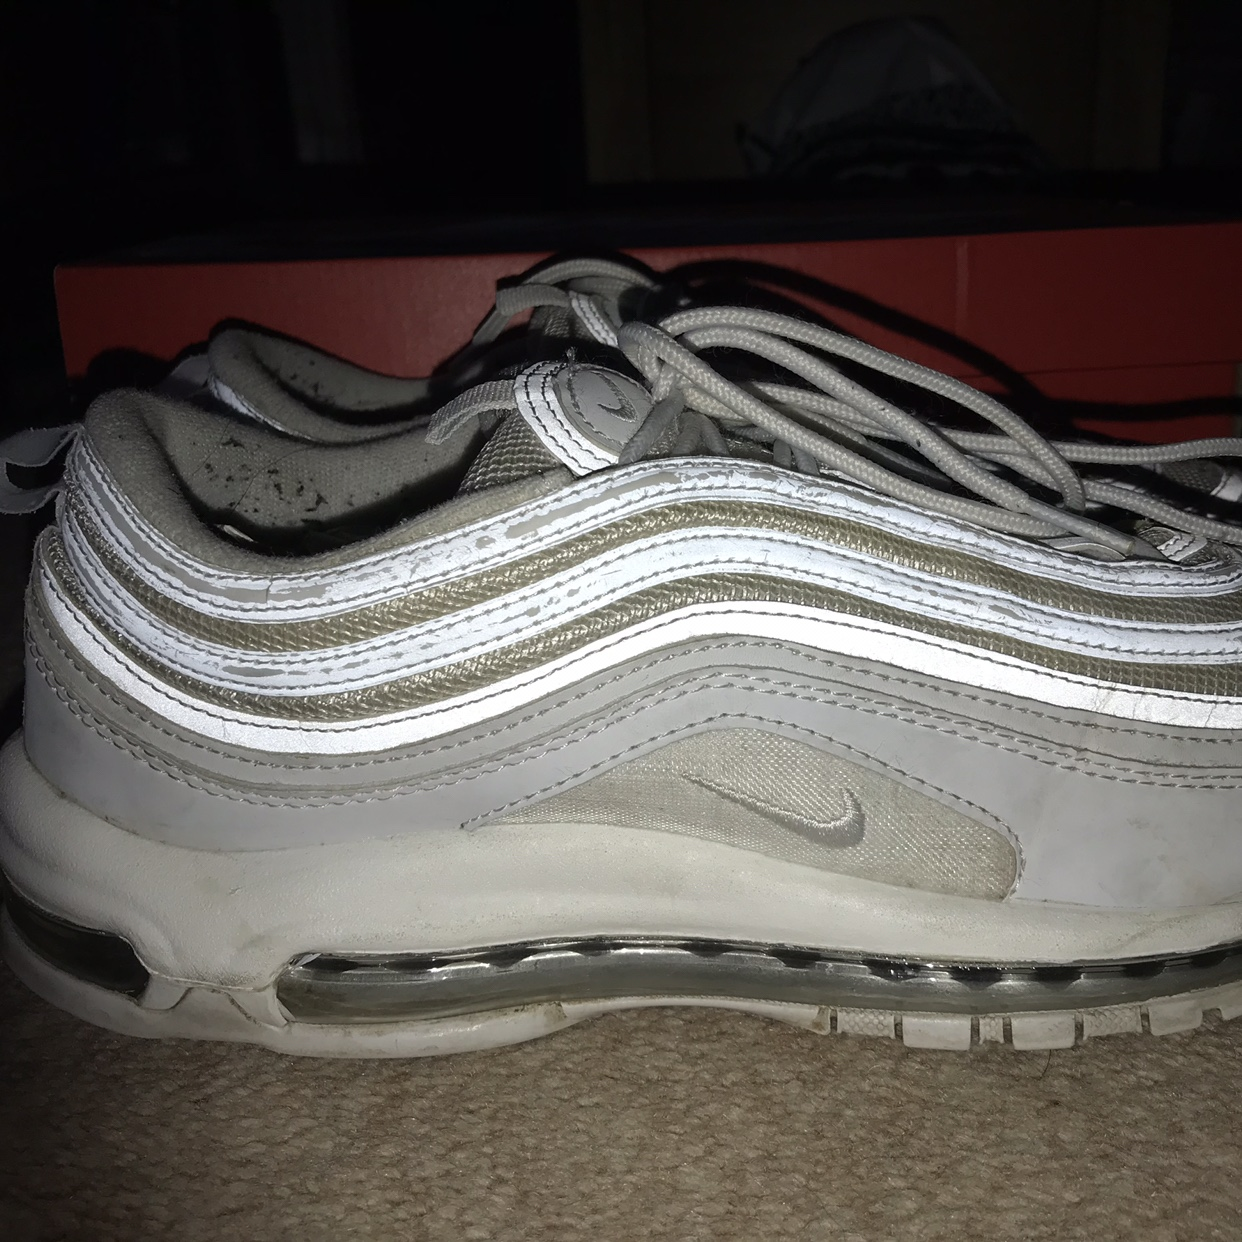 Nike Air Max 97's in White Second hand